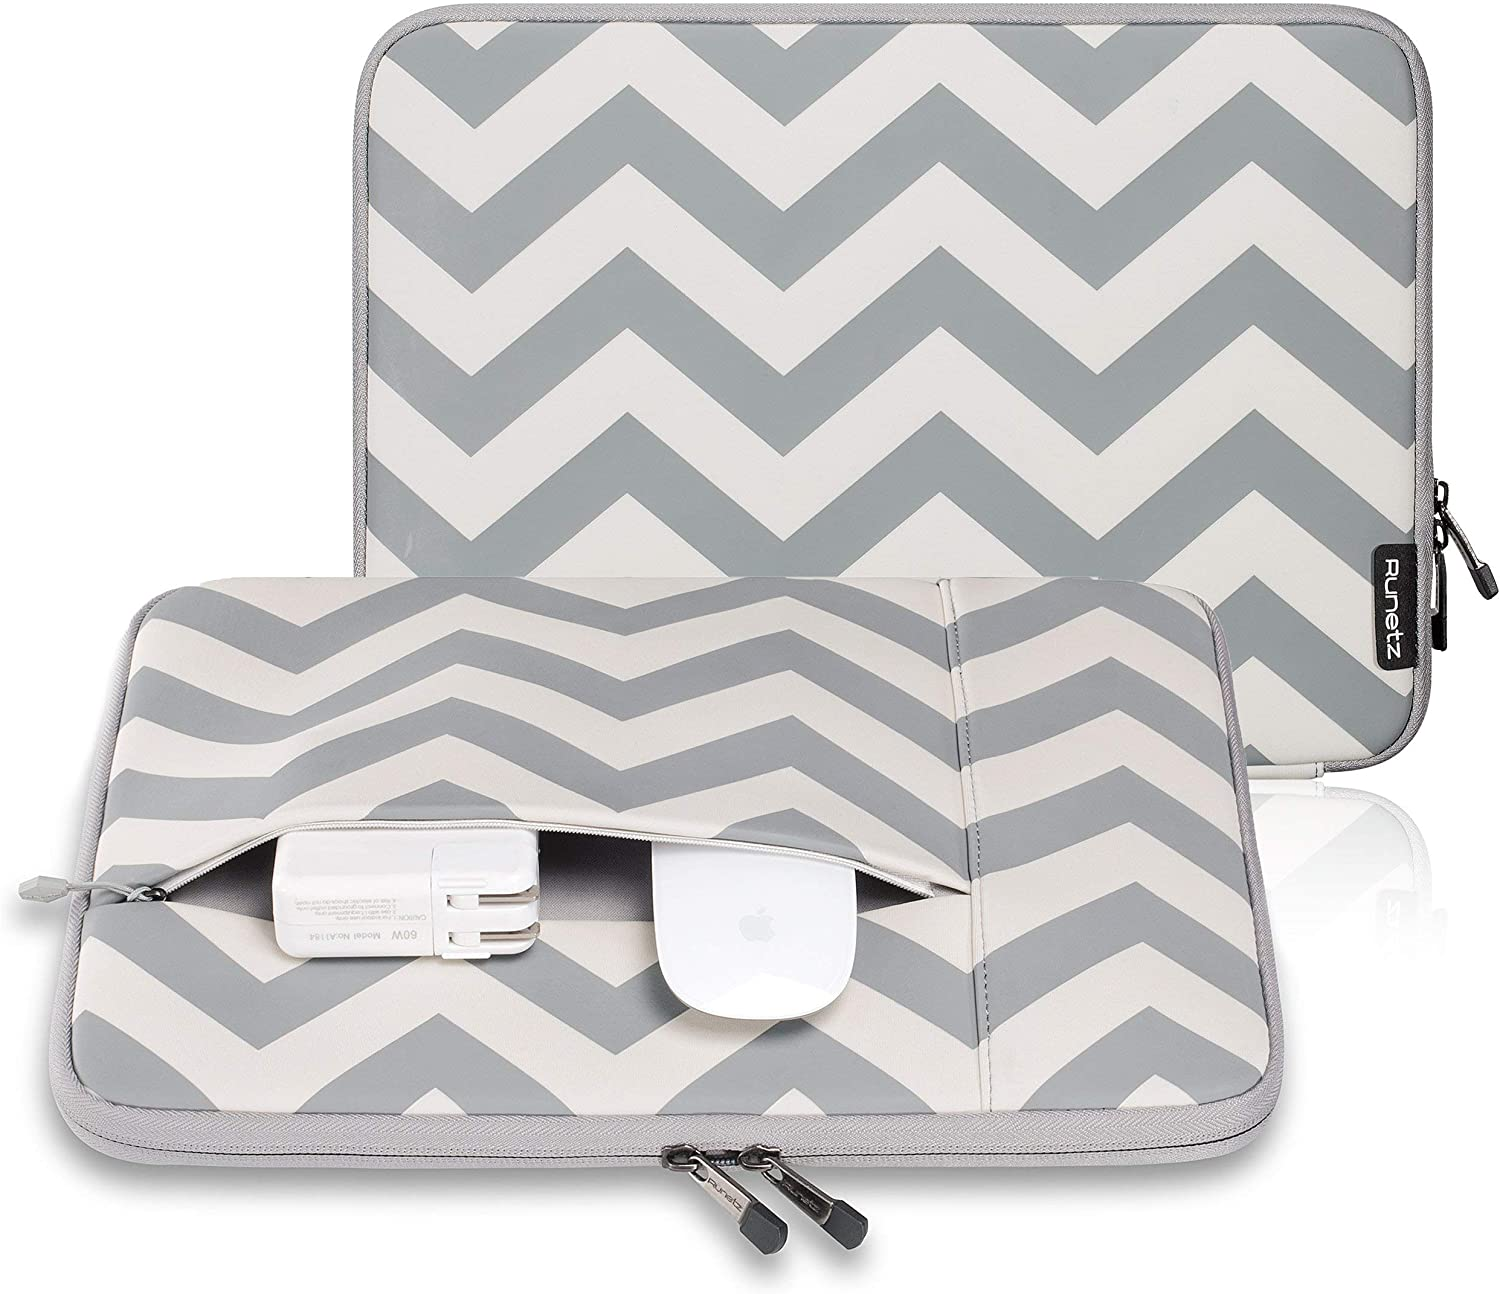 Runetz - MacBook Pro 13 inch Sleeve Neoprene Laptop Sleeve 13.3 inch MacBook Air 13 inch Sleeve Notebook Computer Bag Protective Case Cover with Accessory Pocket with Zipper - Chevron Grey